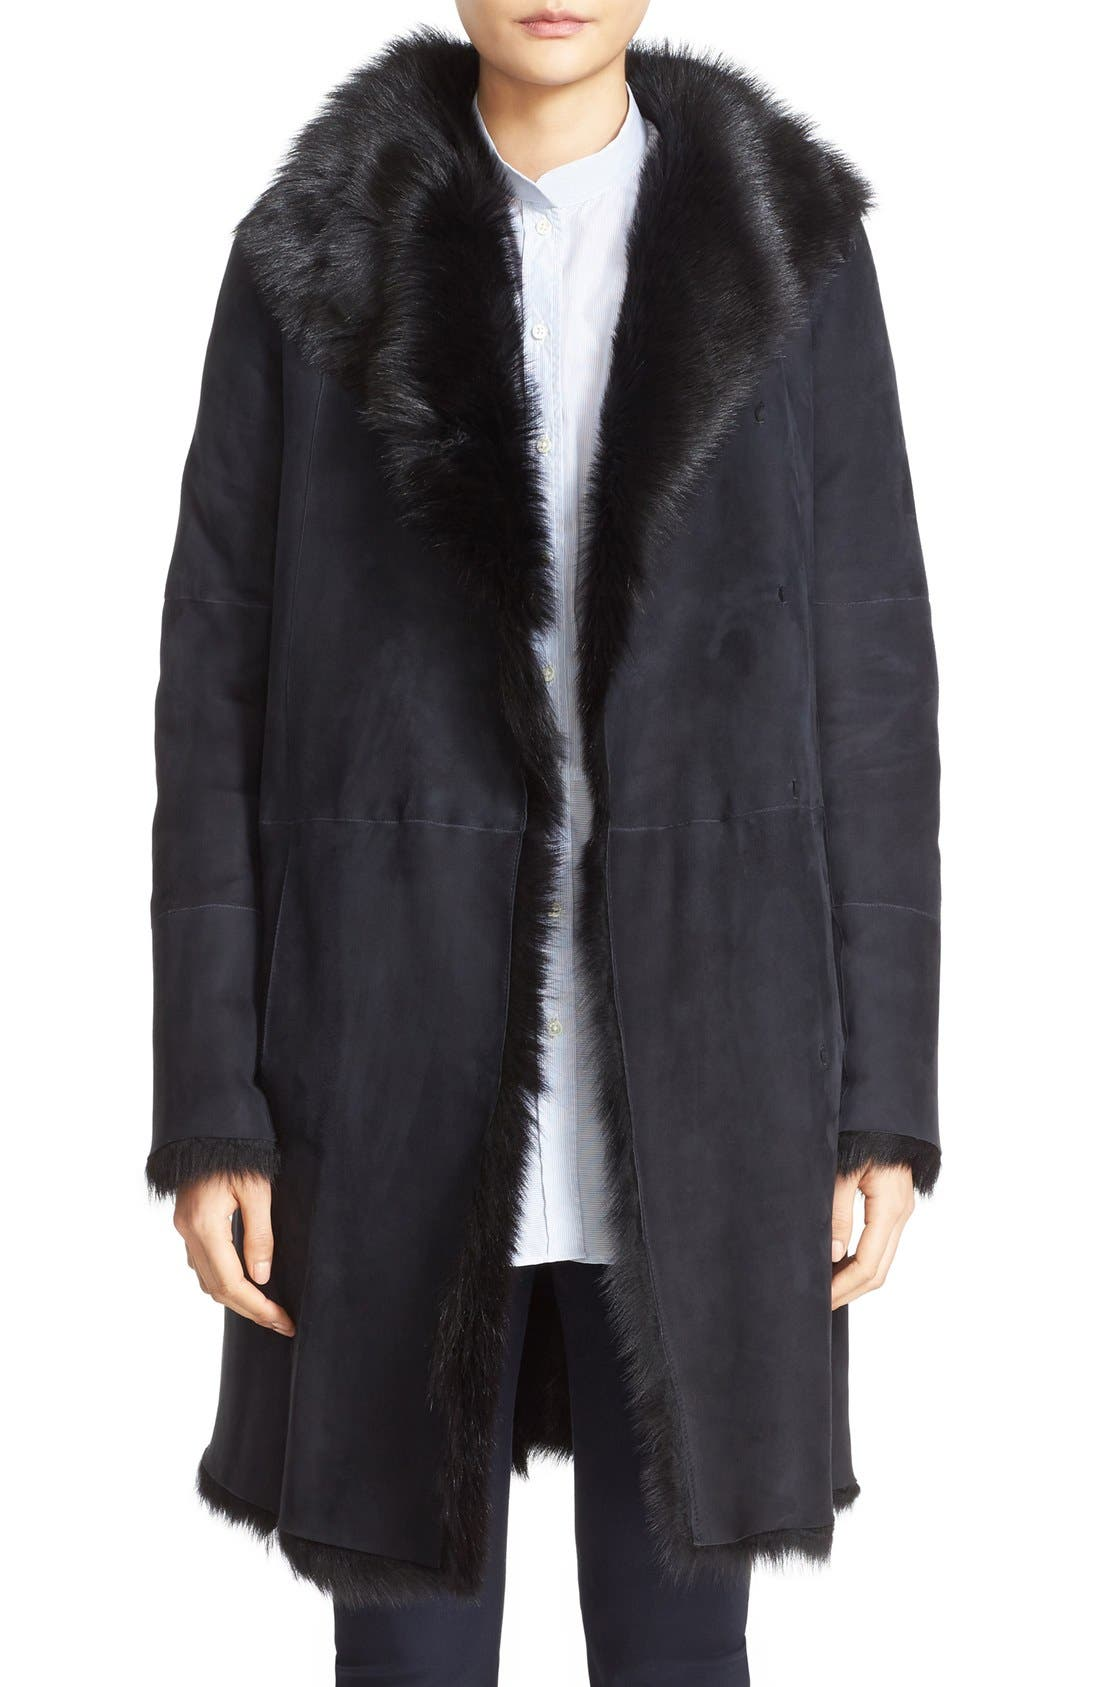 JOSEPH 'Anais' Genuine Toscana Shearling Coat